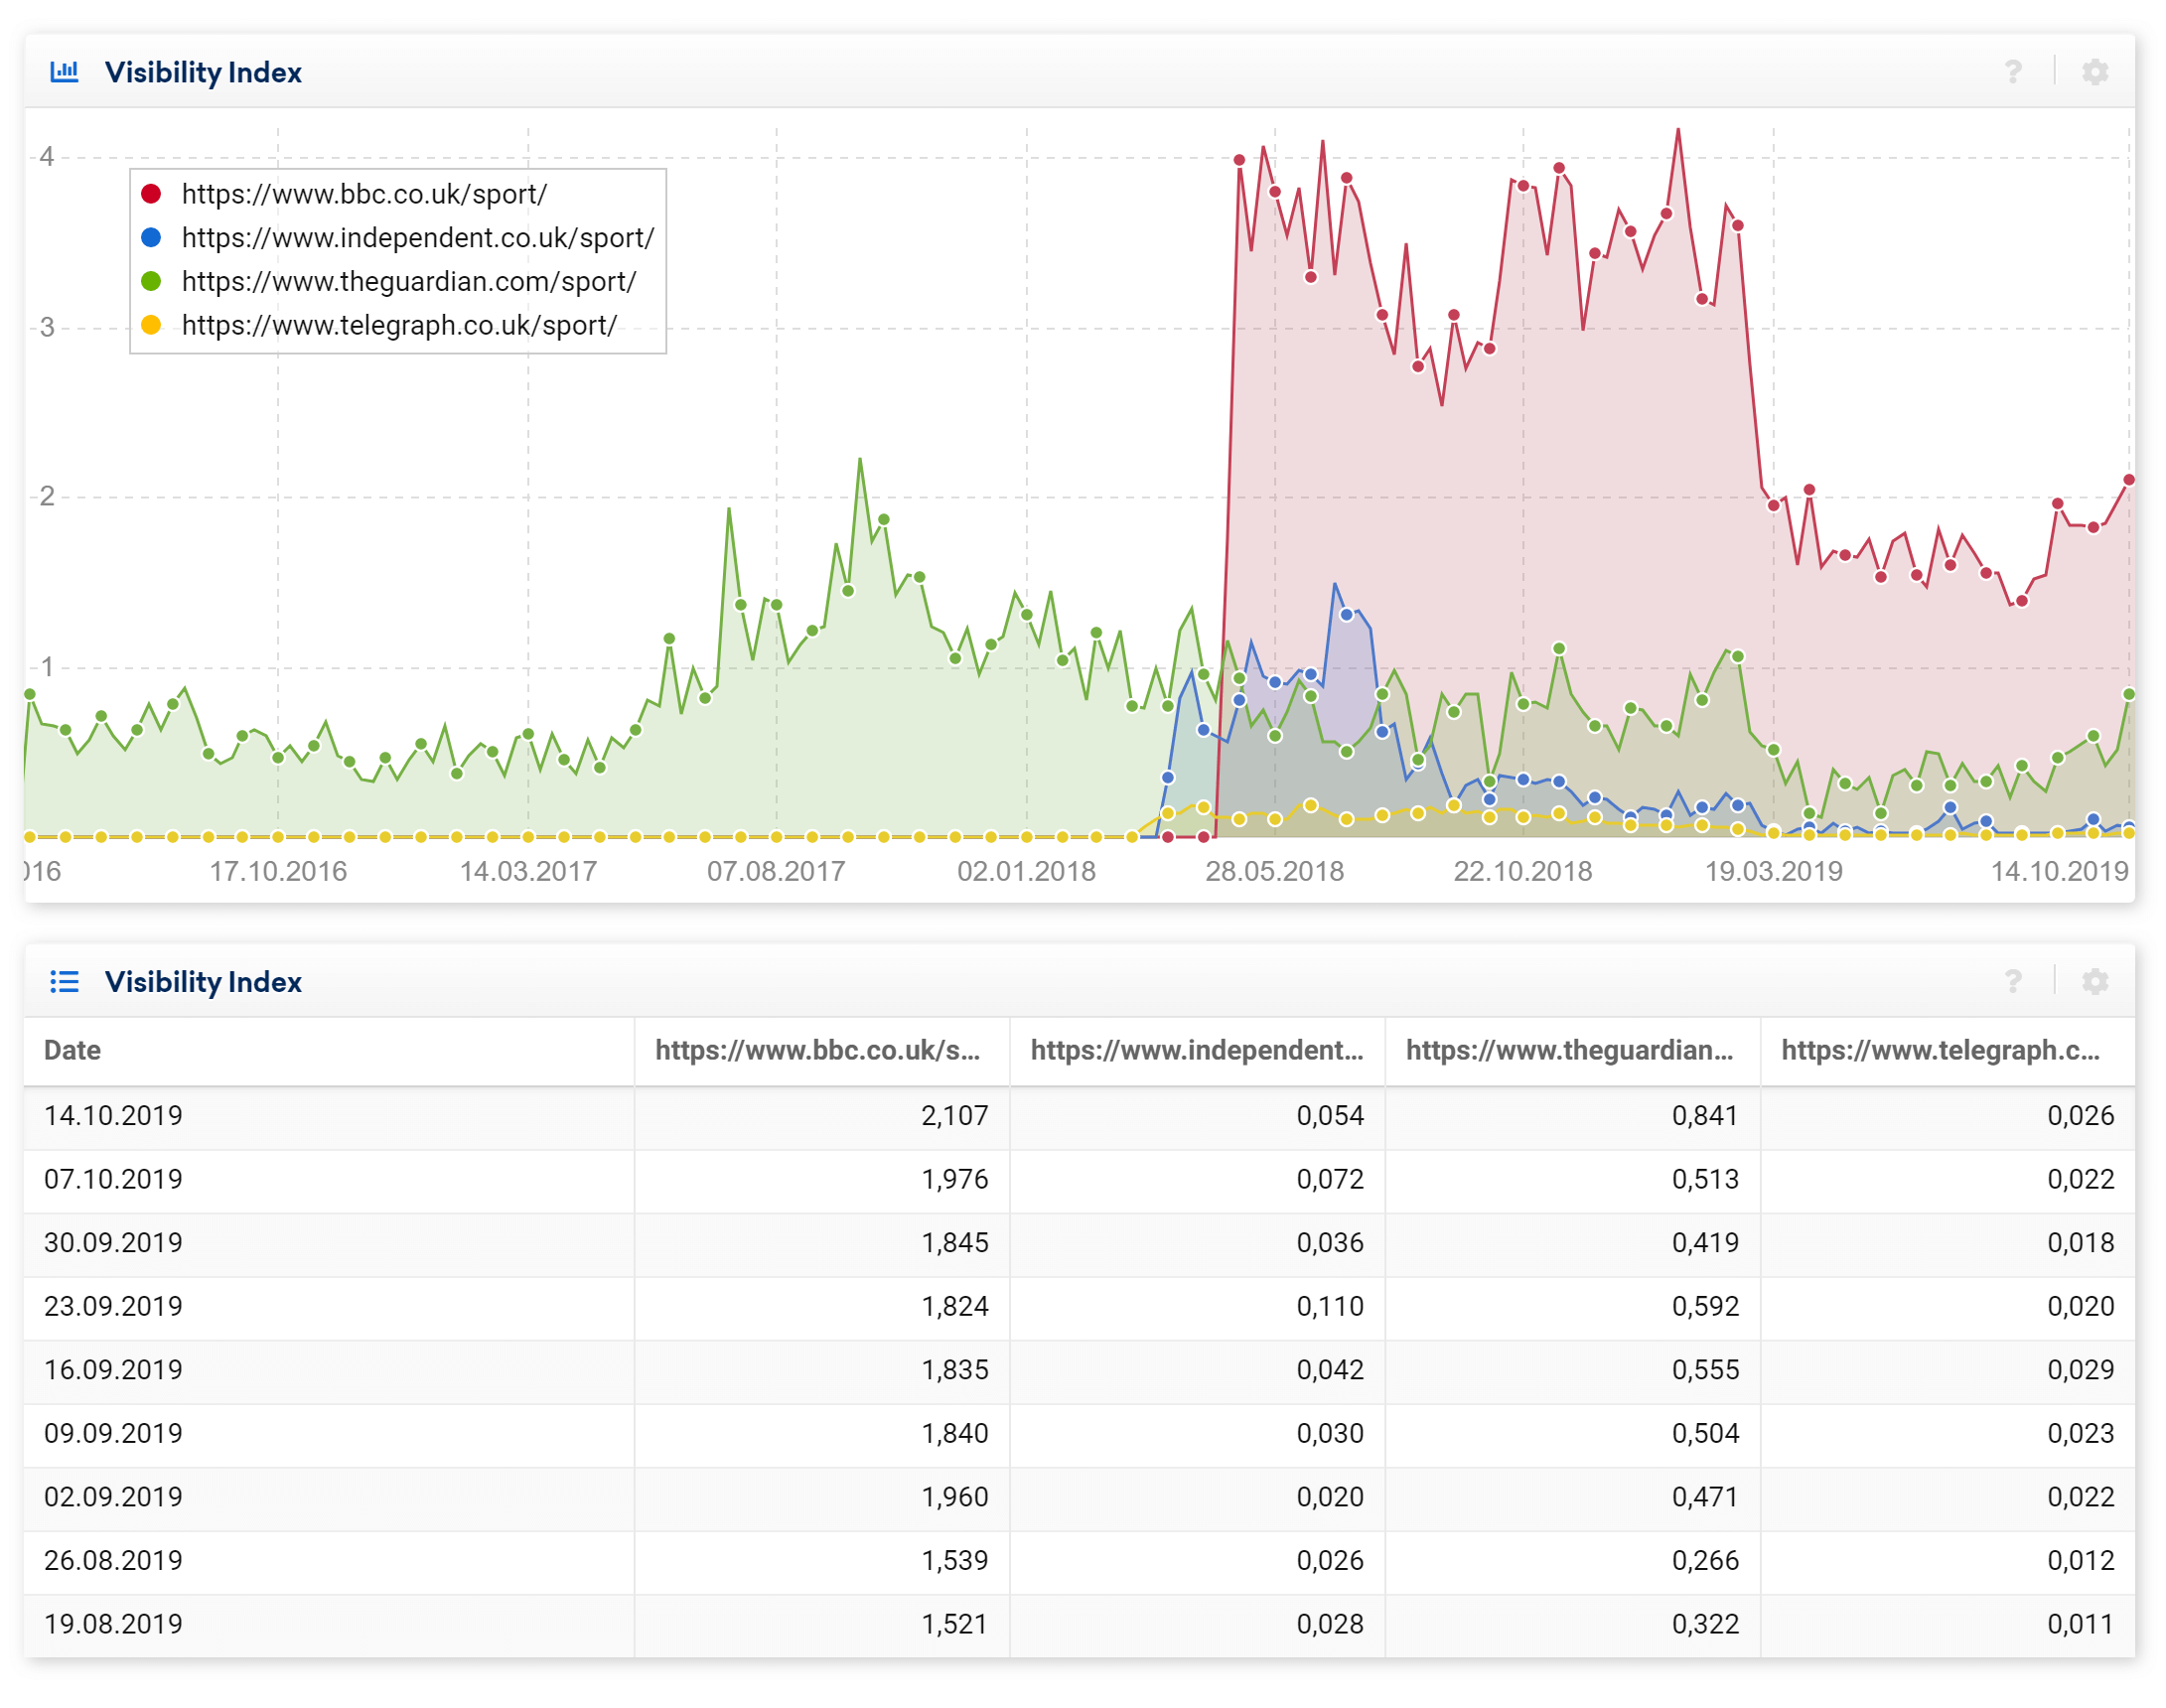 Comparison of directories from different domains in the SISTRIX Toolbox